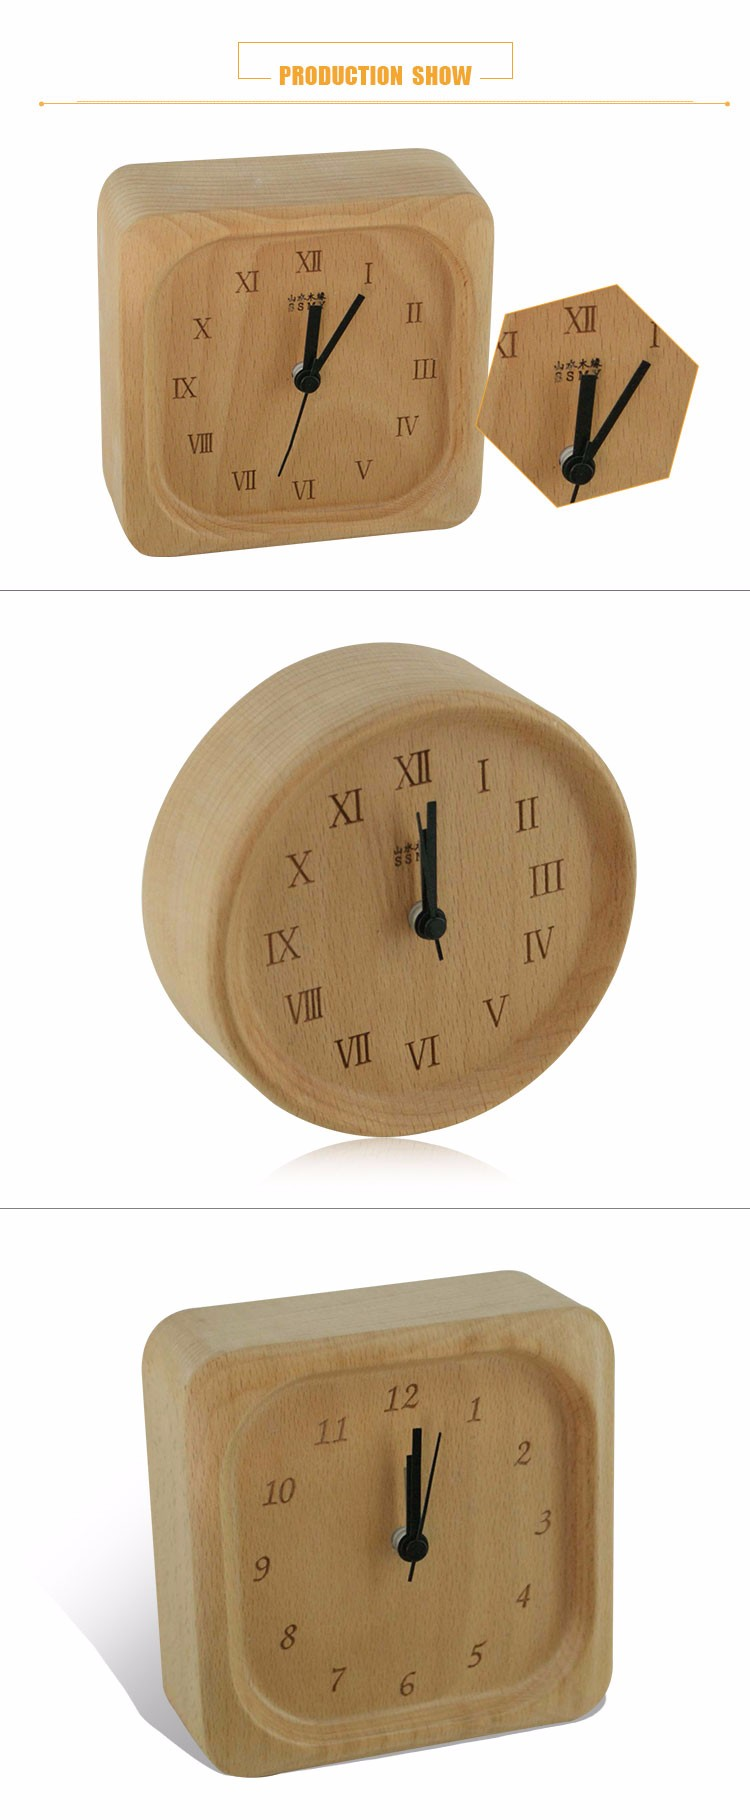 Solid wooden table alarm clock for promotion